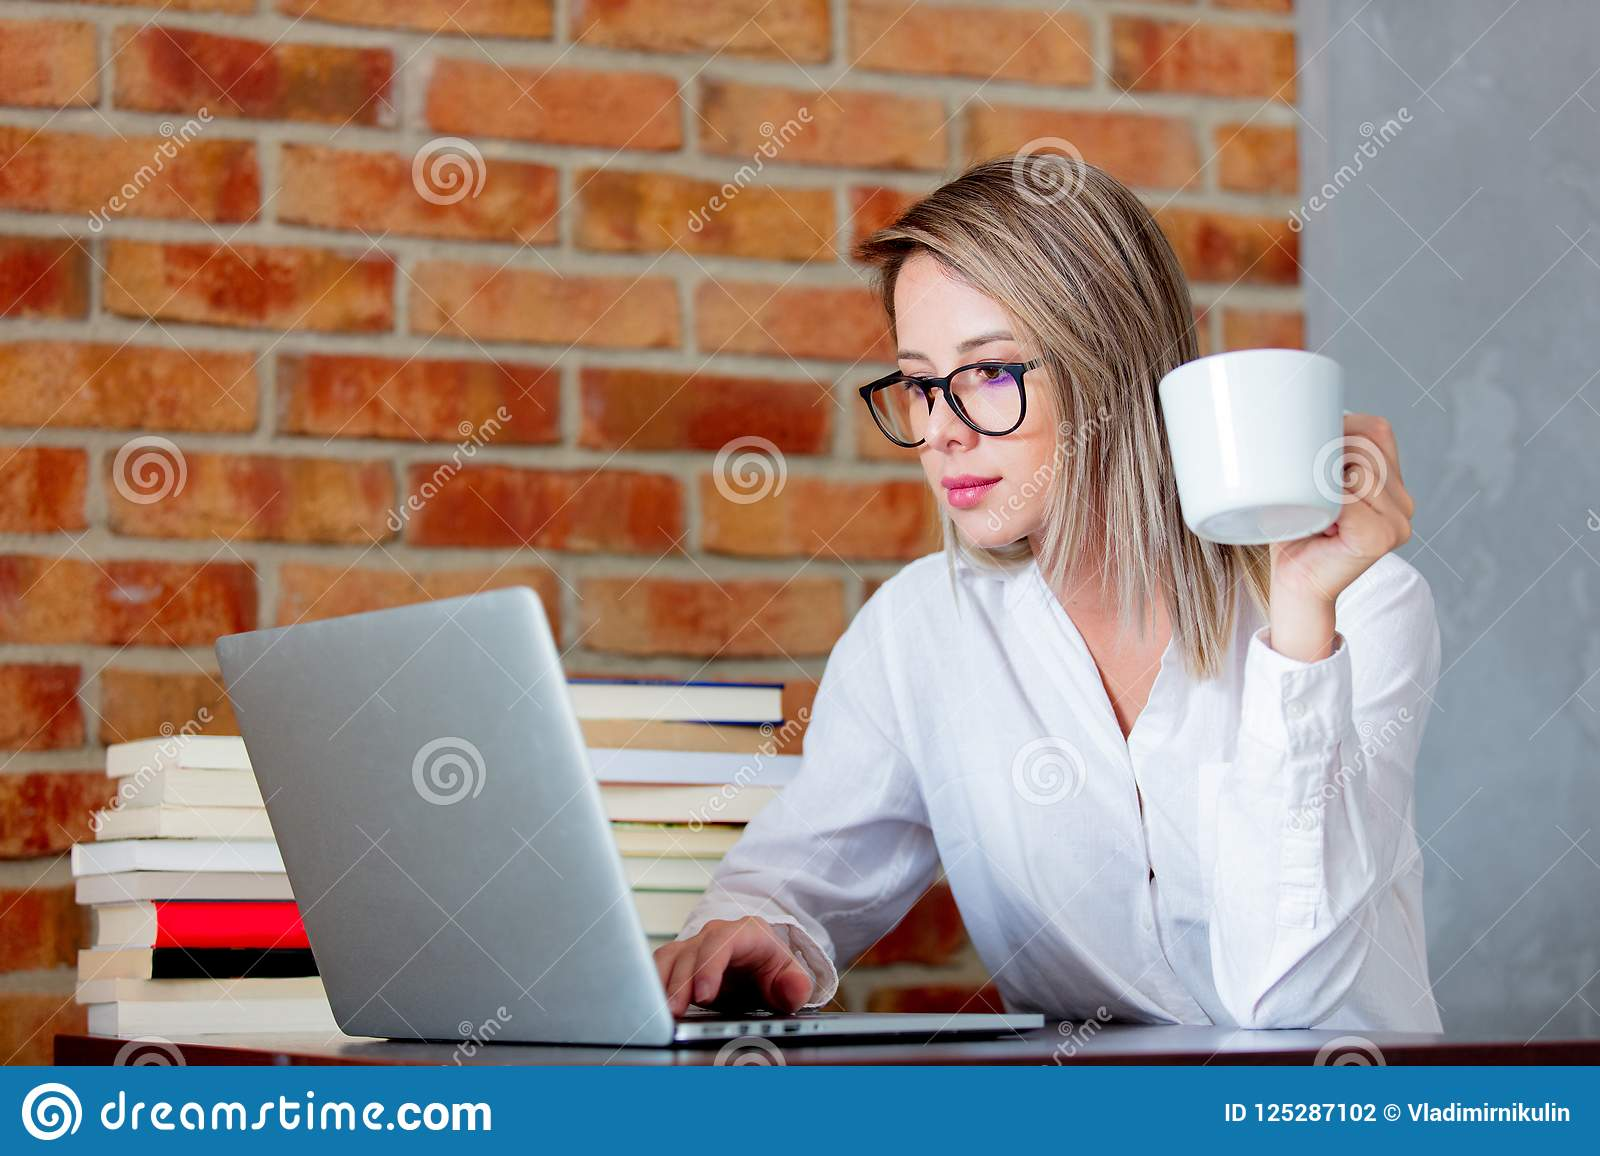 Woman On Working Place Holding A Cup Of Hot Drink Stock ...